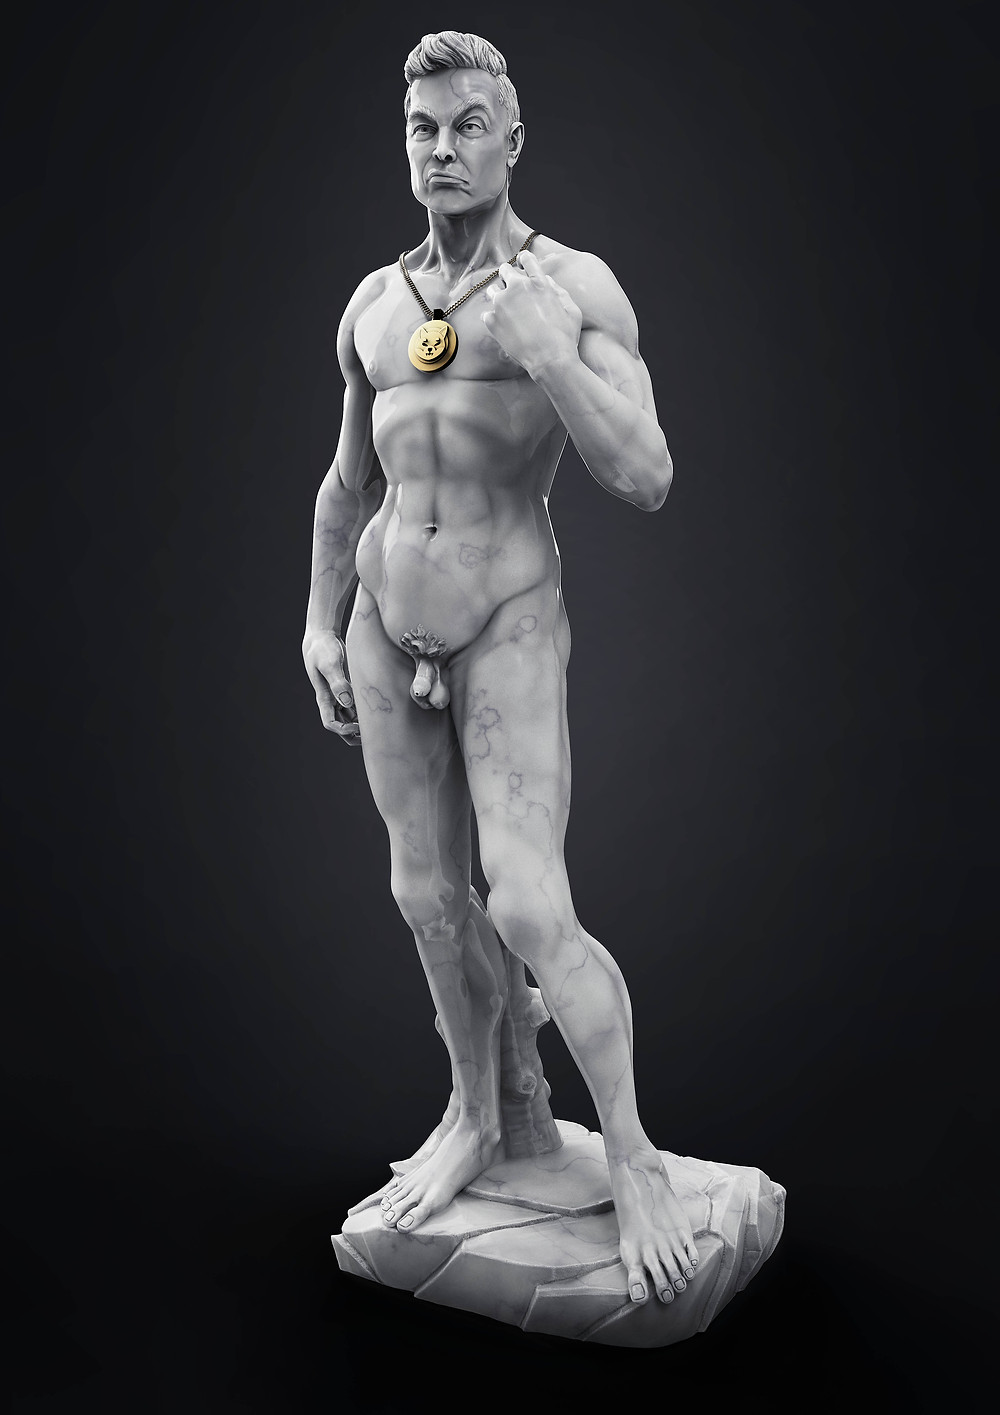 David by Michelangelo with Elon Musks head smoking a joint wearing a shiba Token Necklace